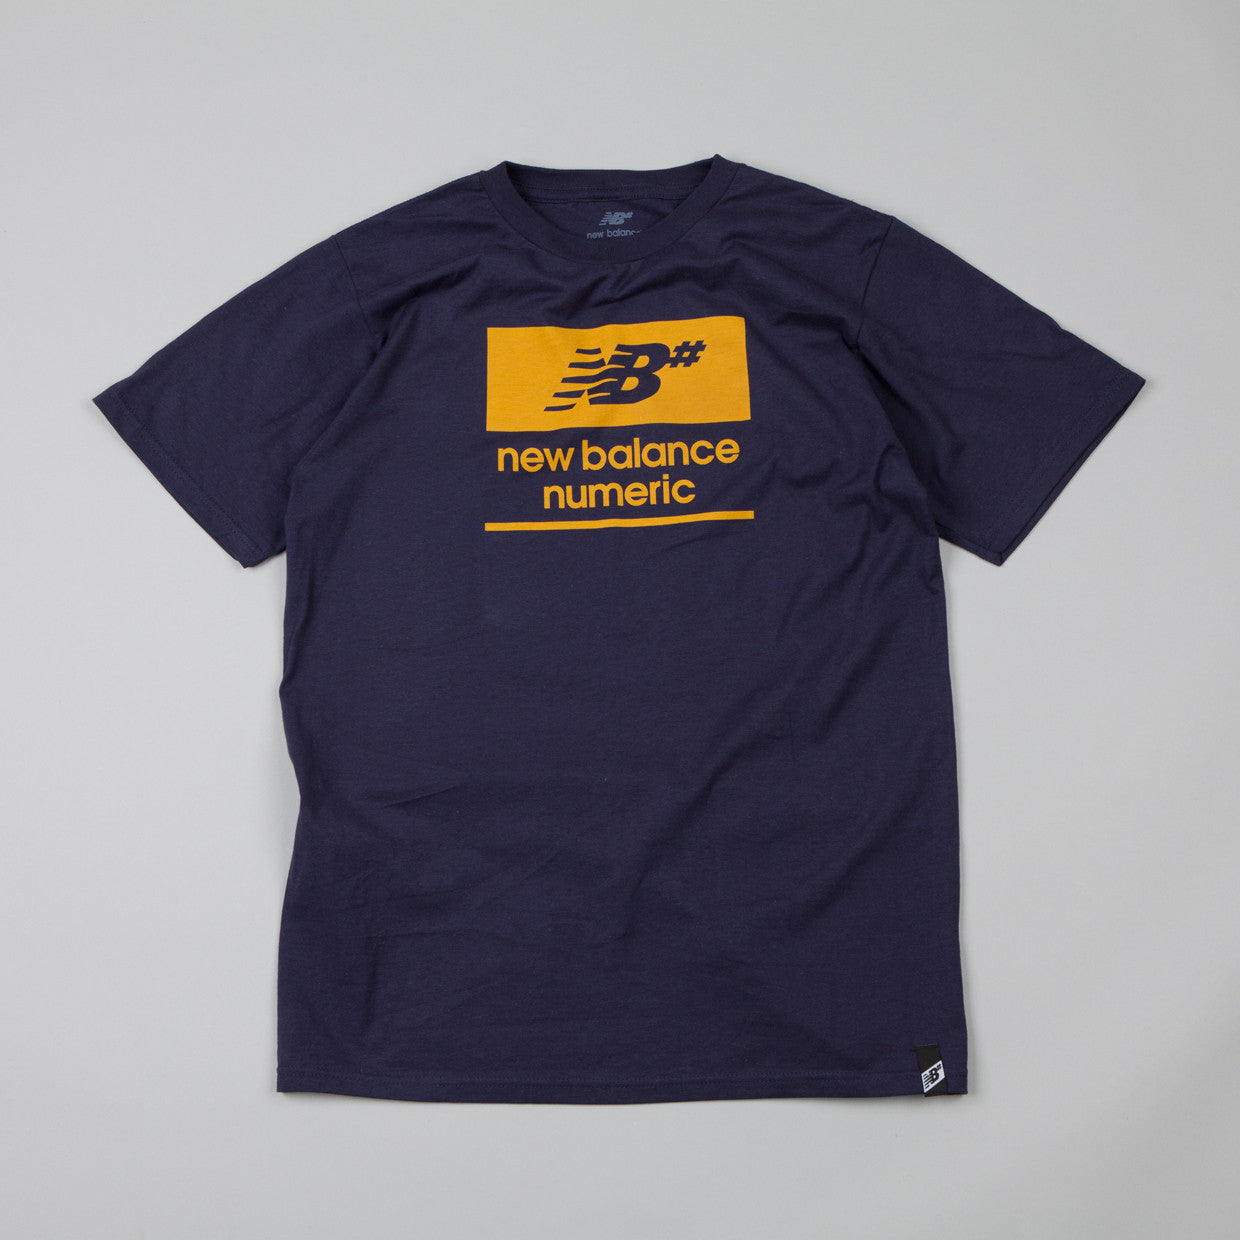 New Balance Numeric Label T Shirt Estate Blue / Gold Yellow